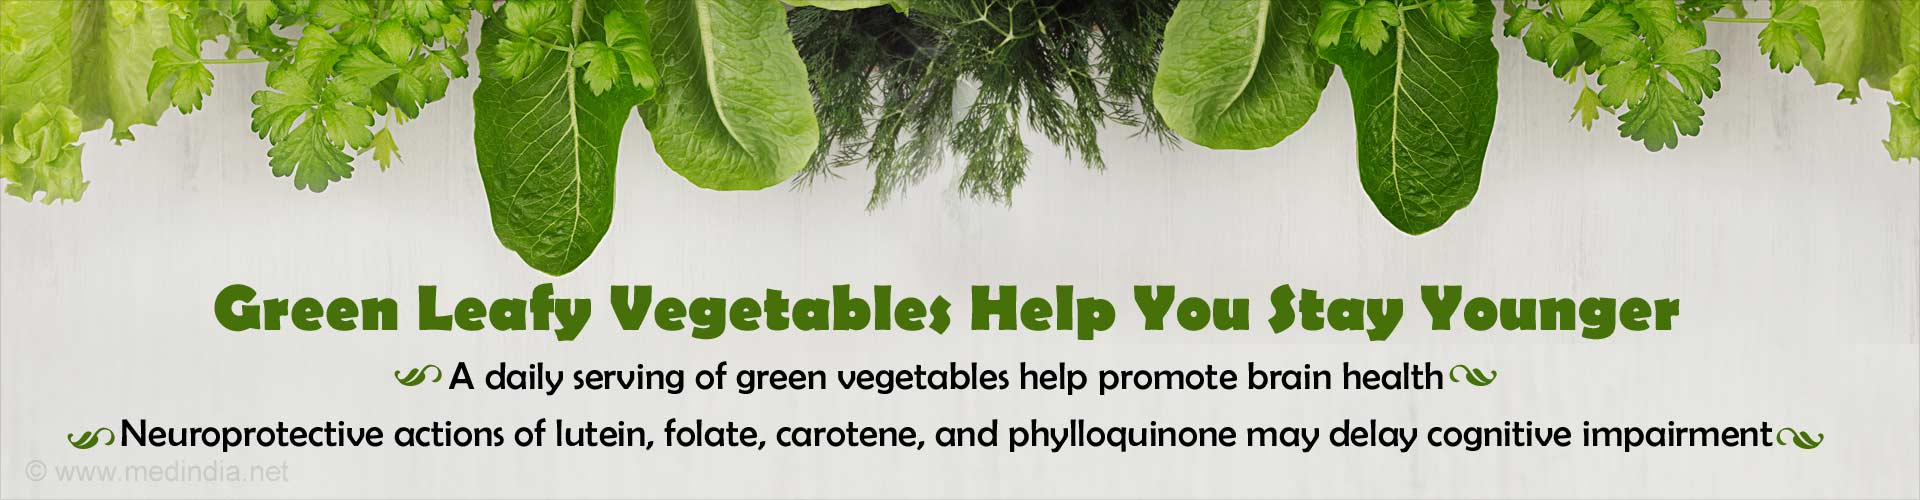 Daily Serving of Green Leafy Vegetables Keep You 11 Years Younger